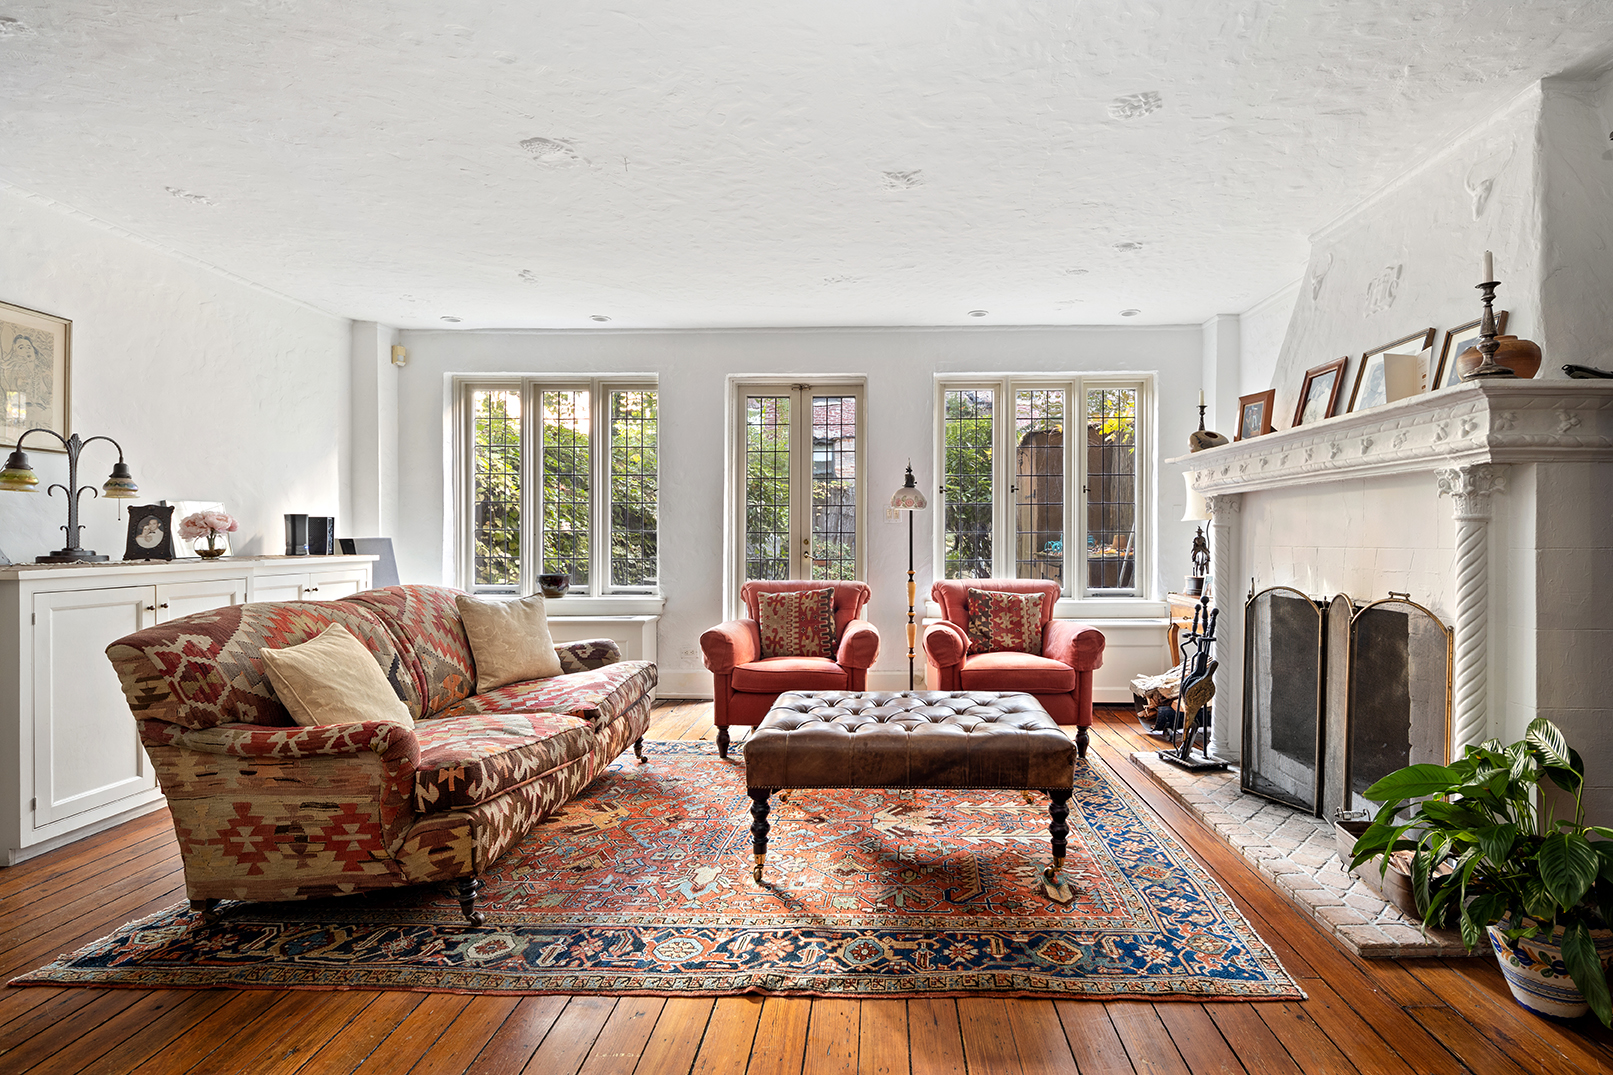 A living area with several windows, hardwood floors, a couch, and a fireplace with a mantel.